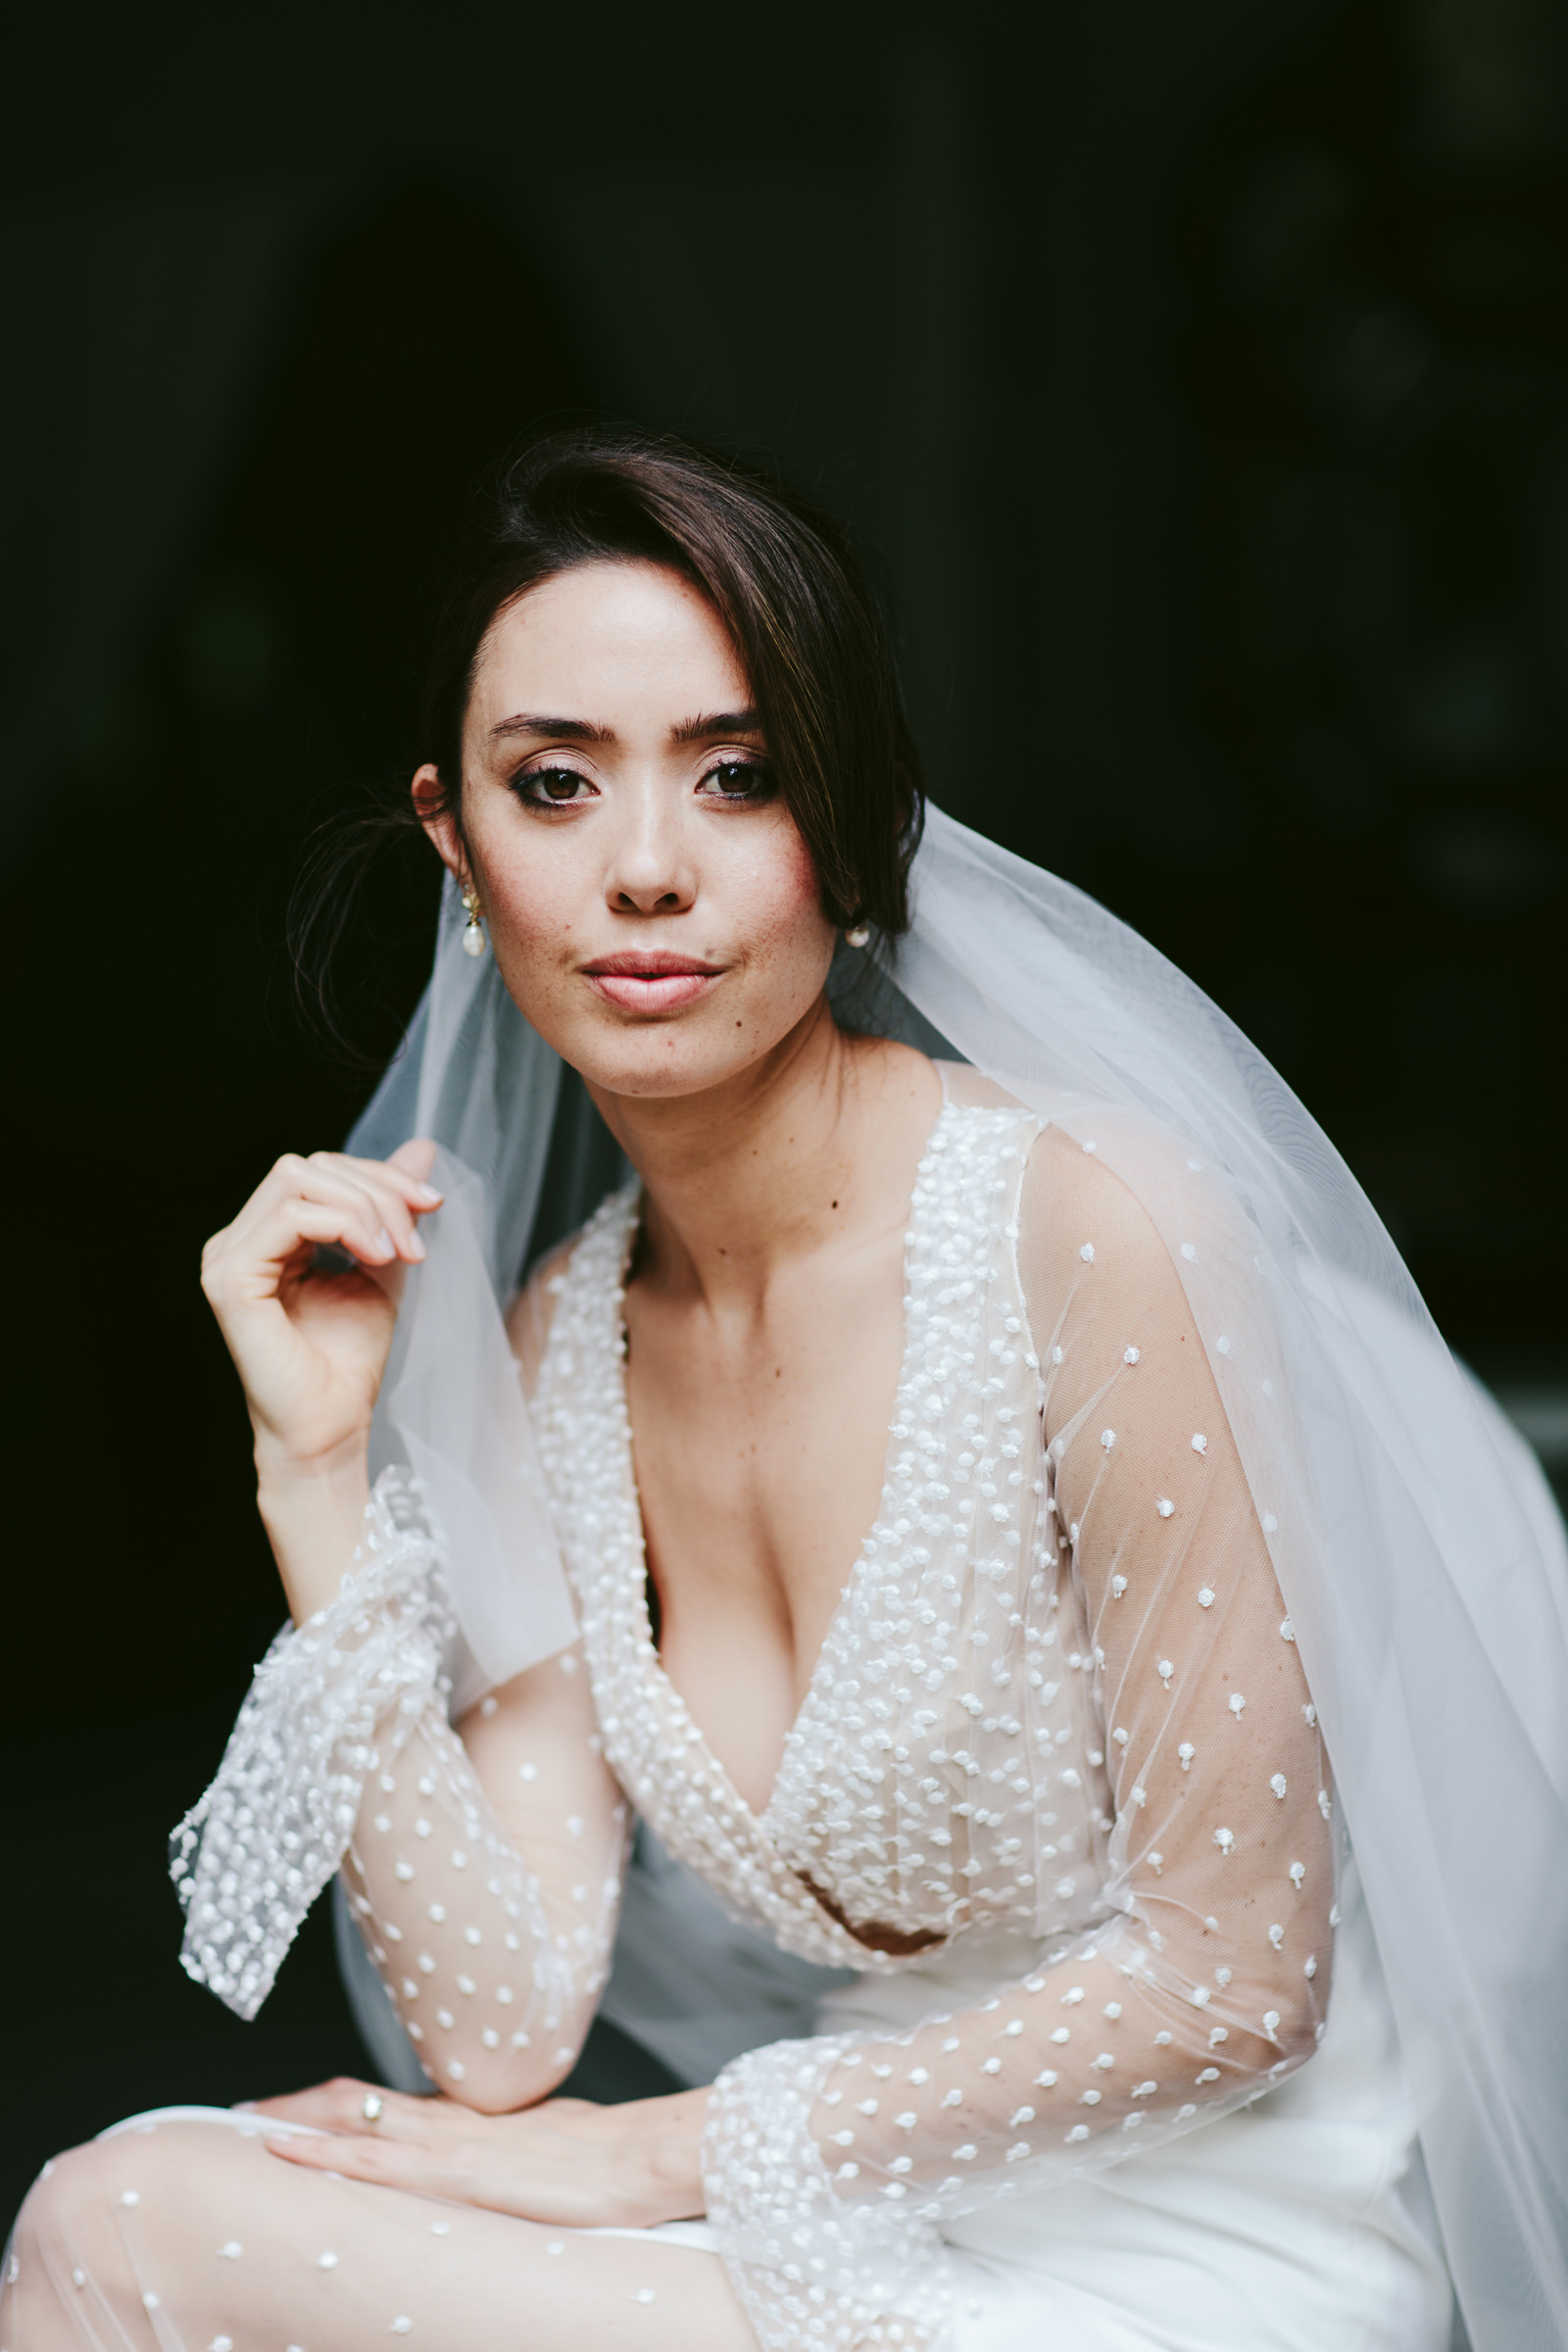 Bride with veil and beaded wedding gown - photo by Melia Lucida